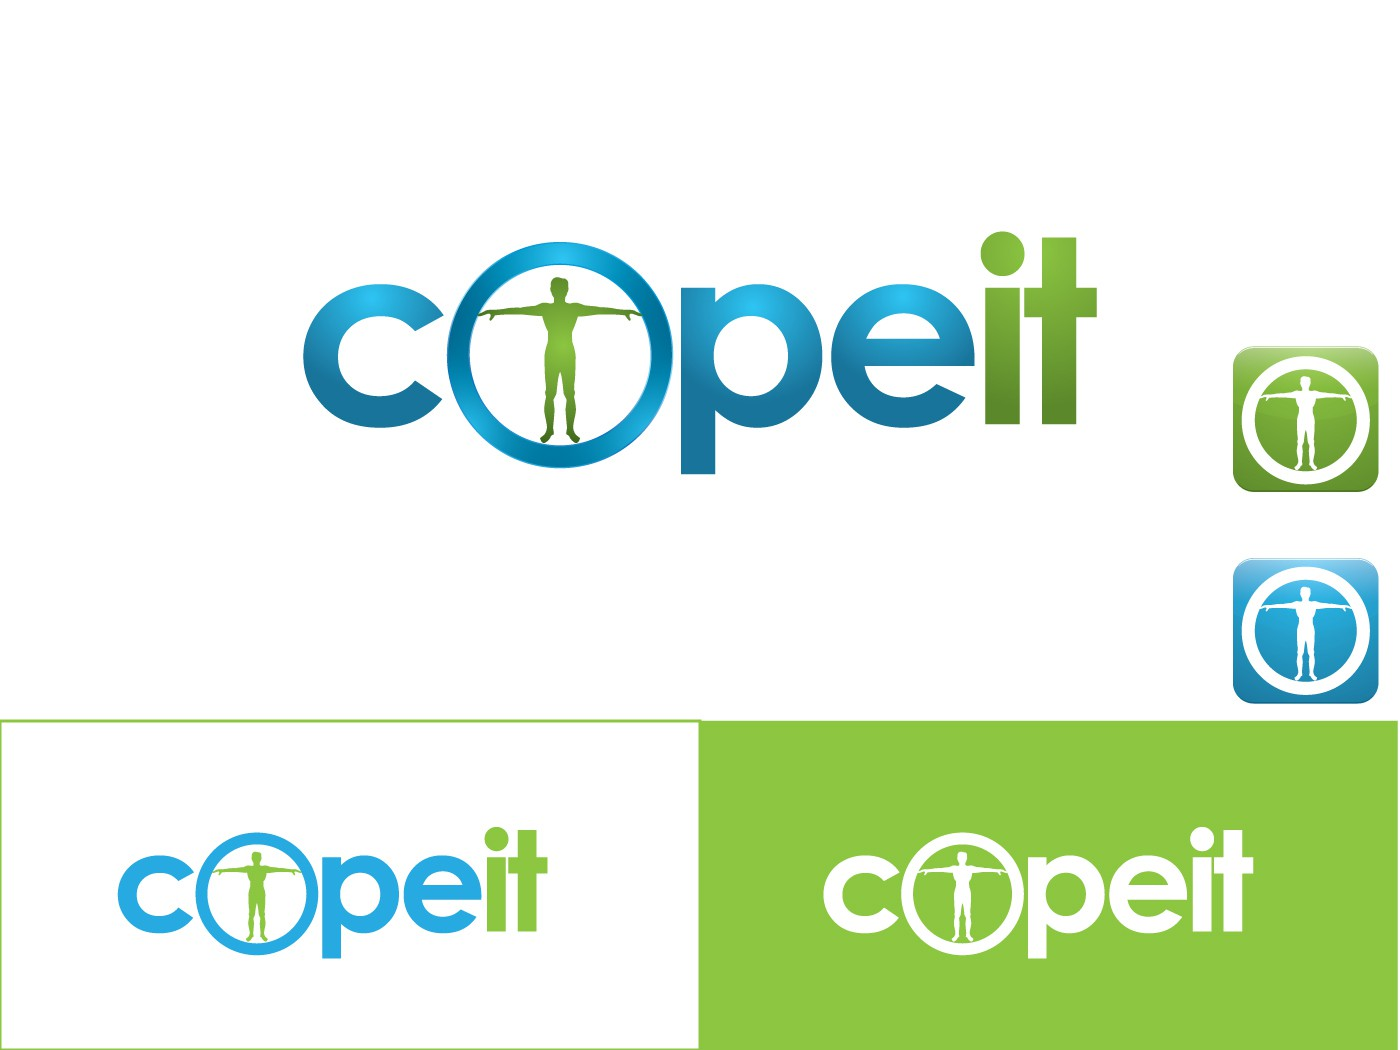 CopeIT is looking for a new logo and brand design